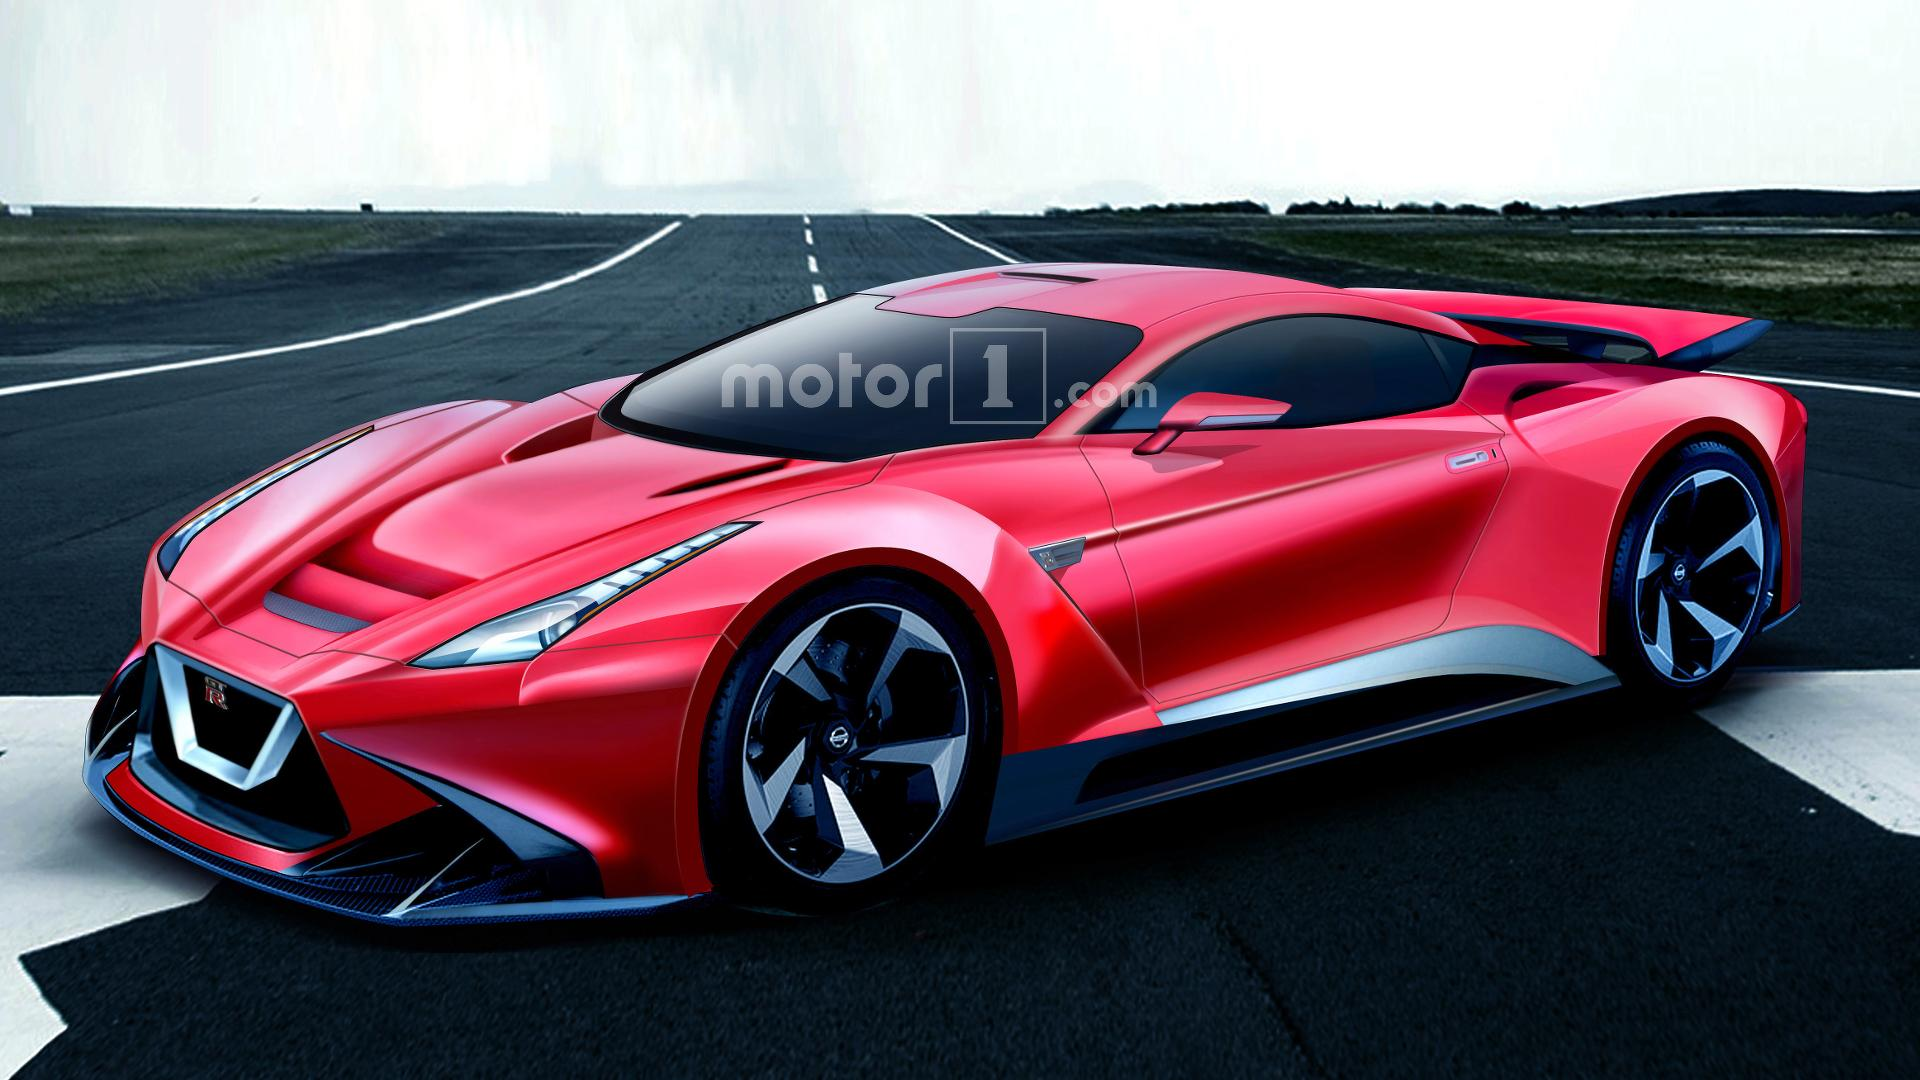 64 The Best 2020 Nissan Gt R Nismo Release Date and Concept